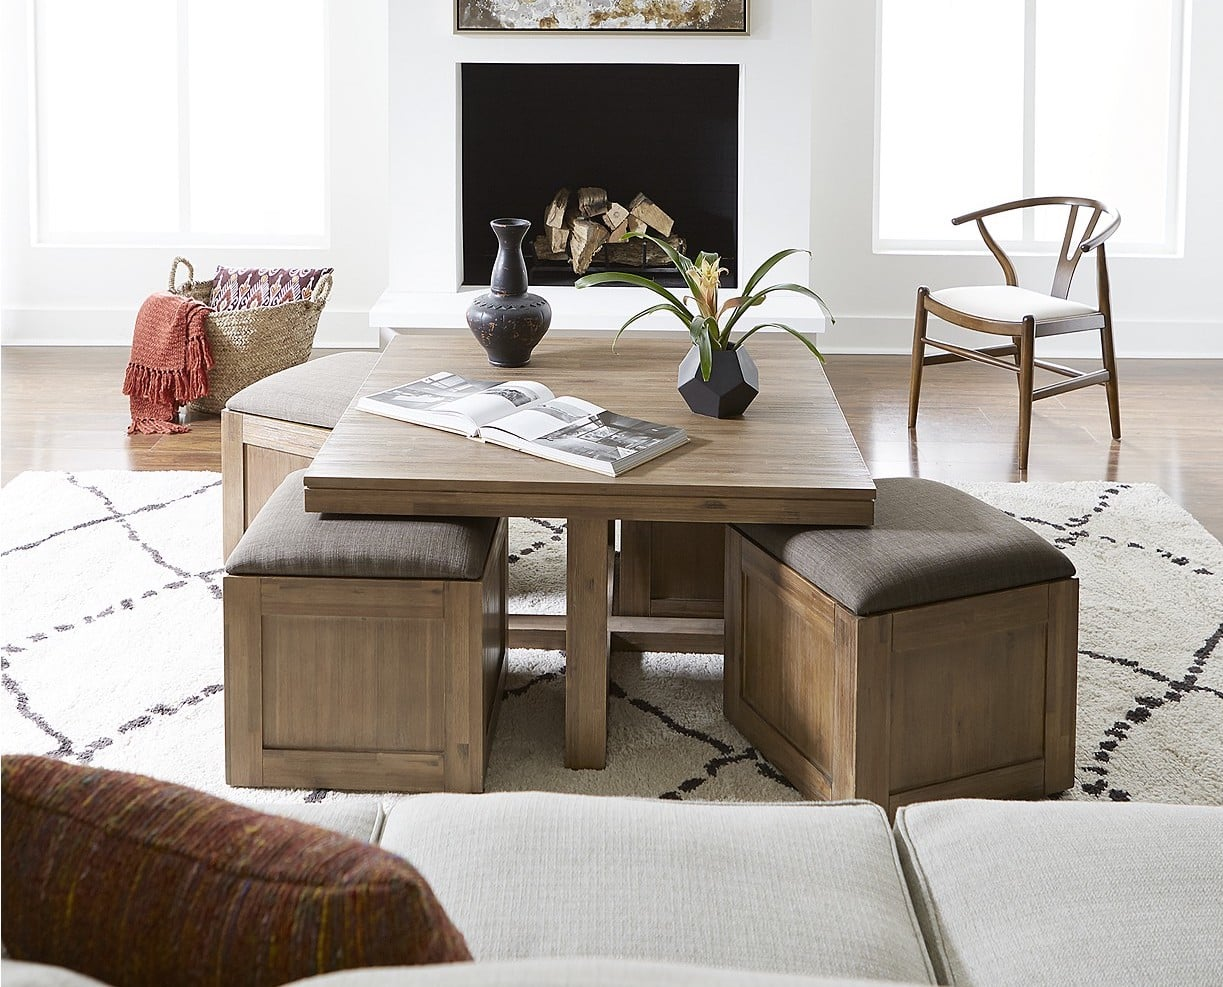 Champagne Cube Coffee Table With 4 Storage Ottoman   From Beds to